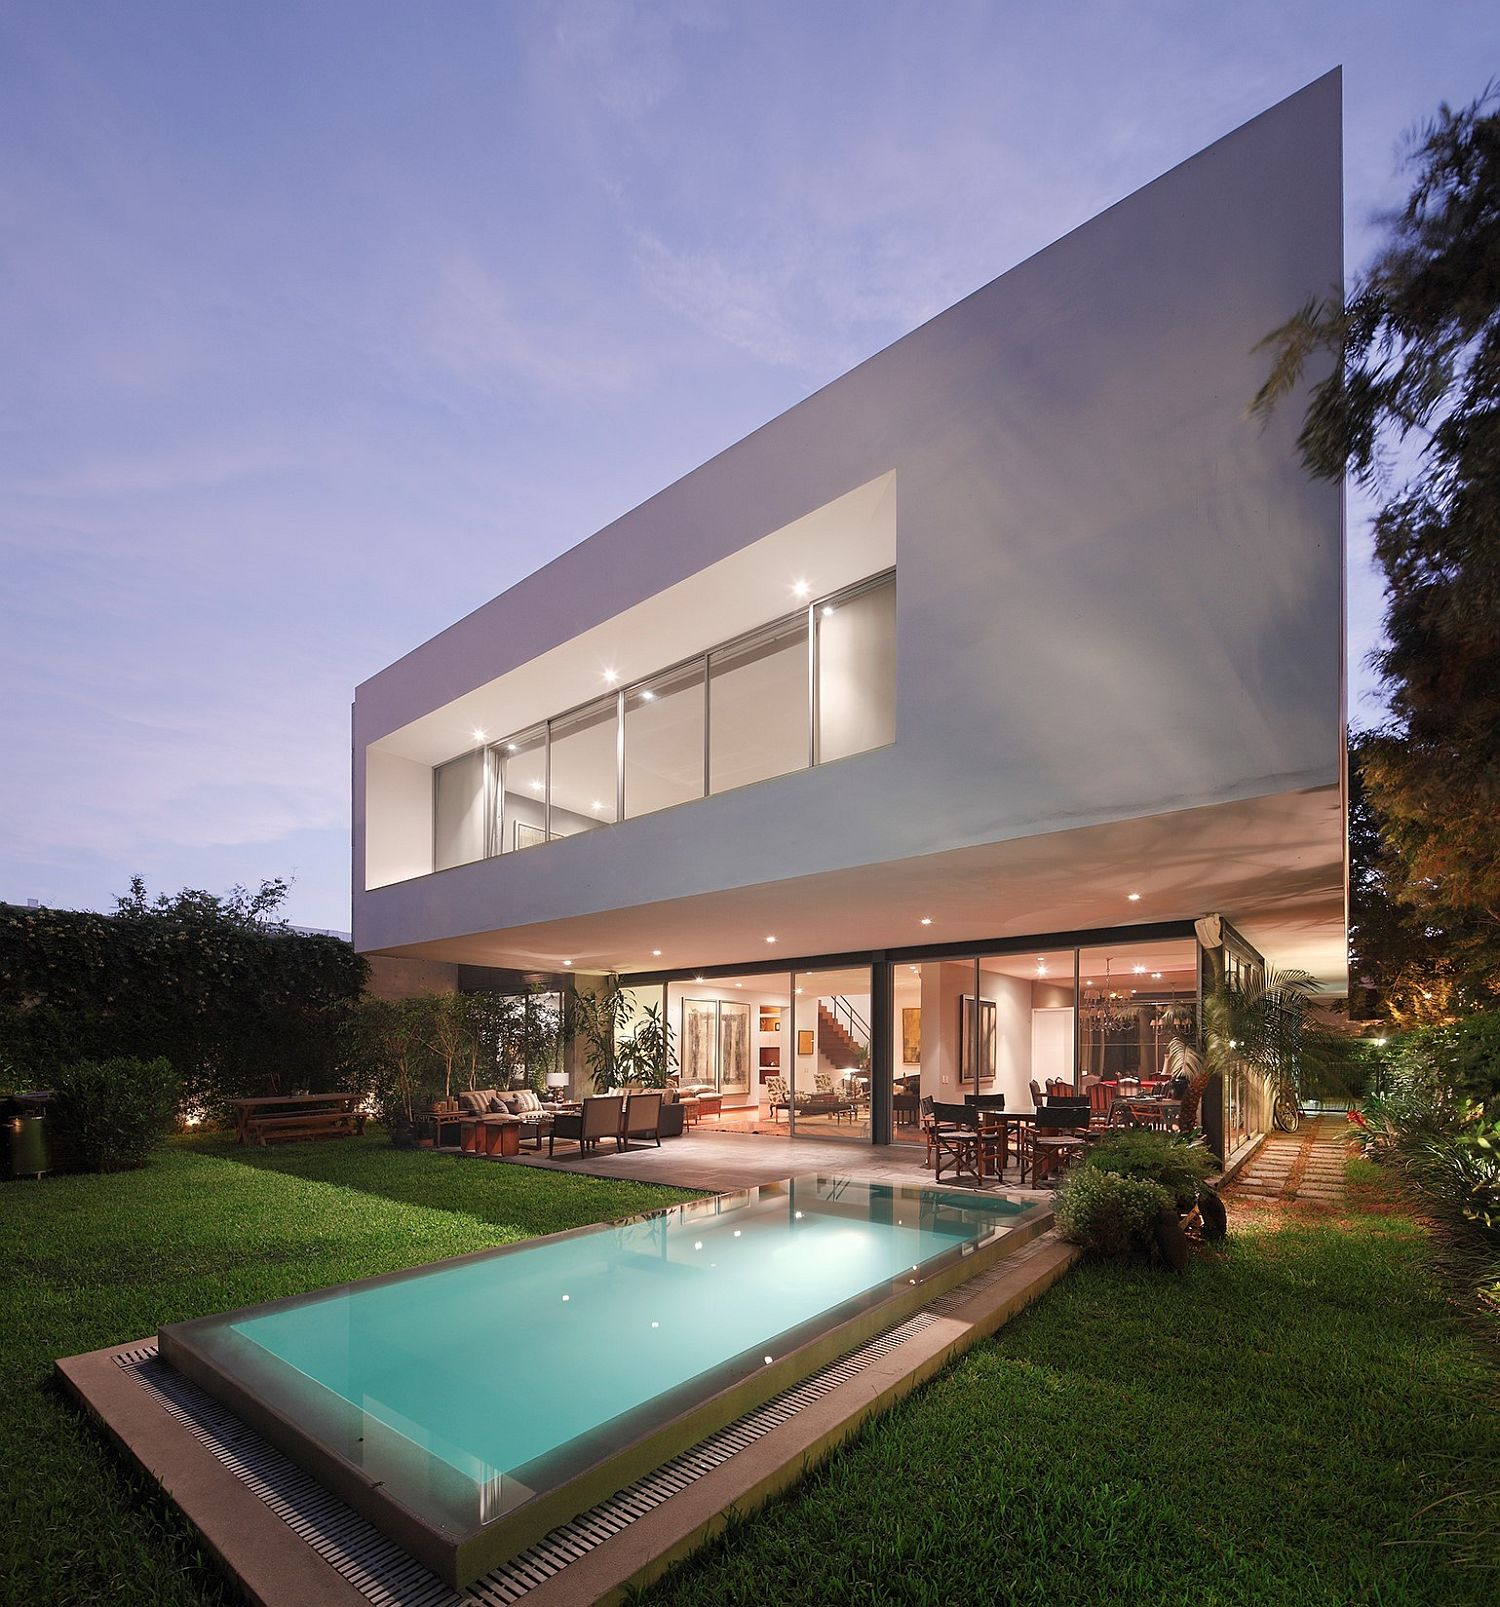 Contemporary House M in Lima with a relaxing pool in the backyard